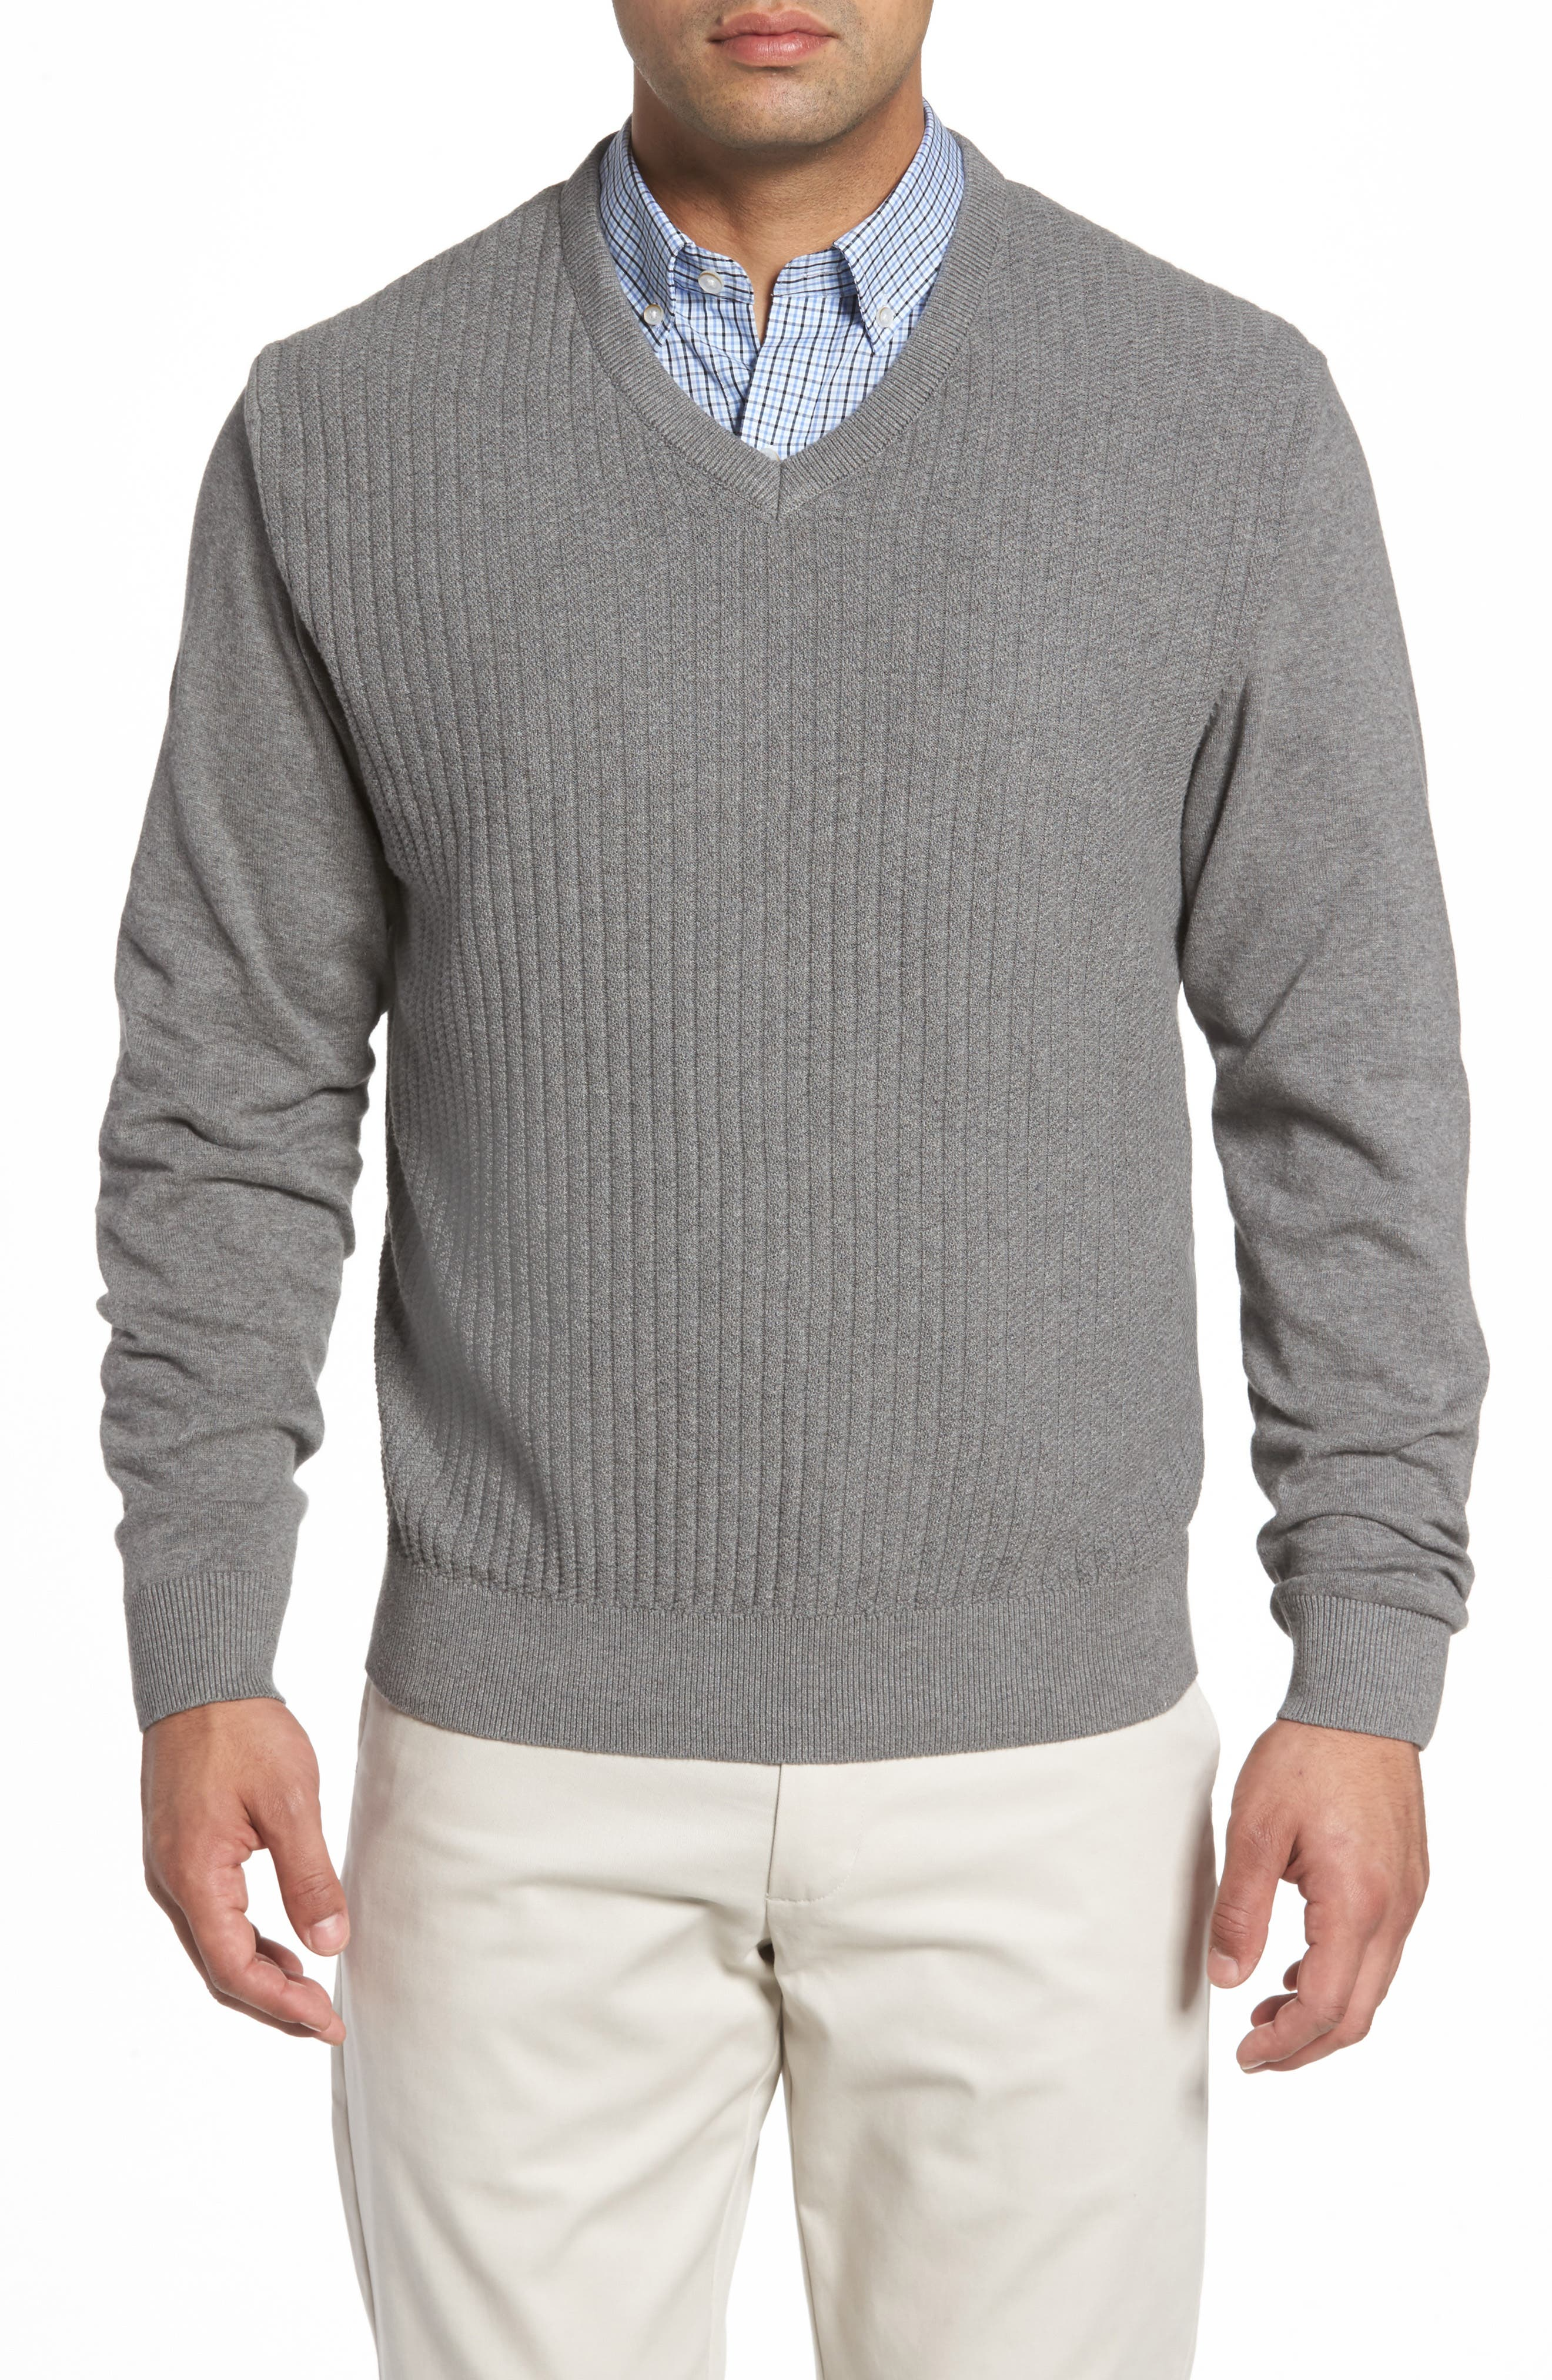 Alternate Image 1 Selected - Cutter & Buck Bryant Rib-Knit V-Neck Sweater